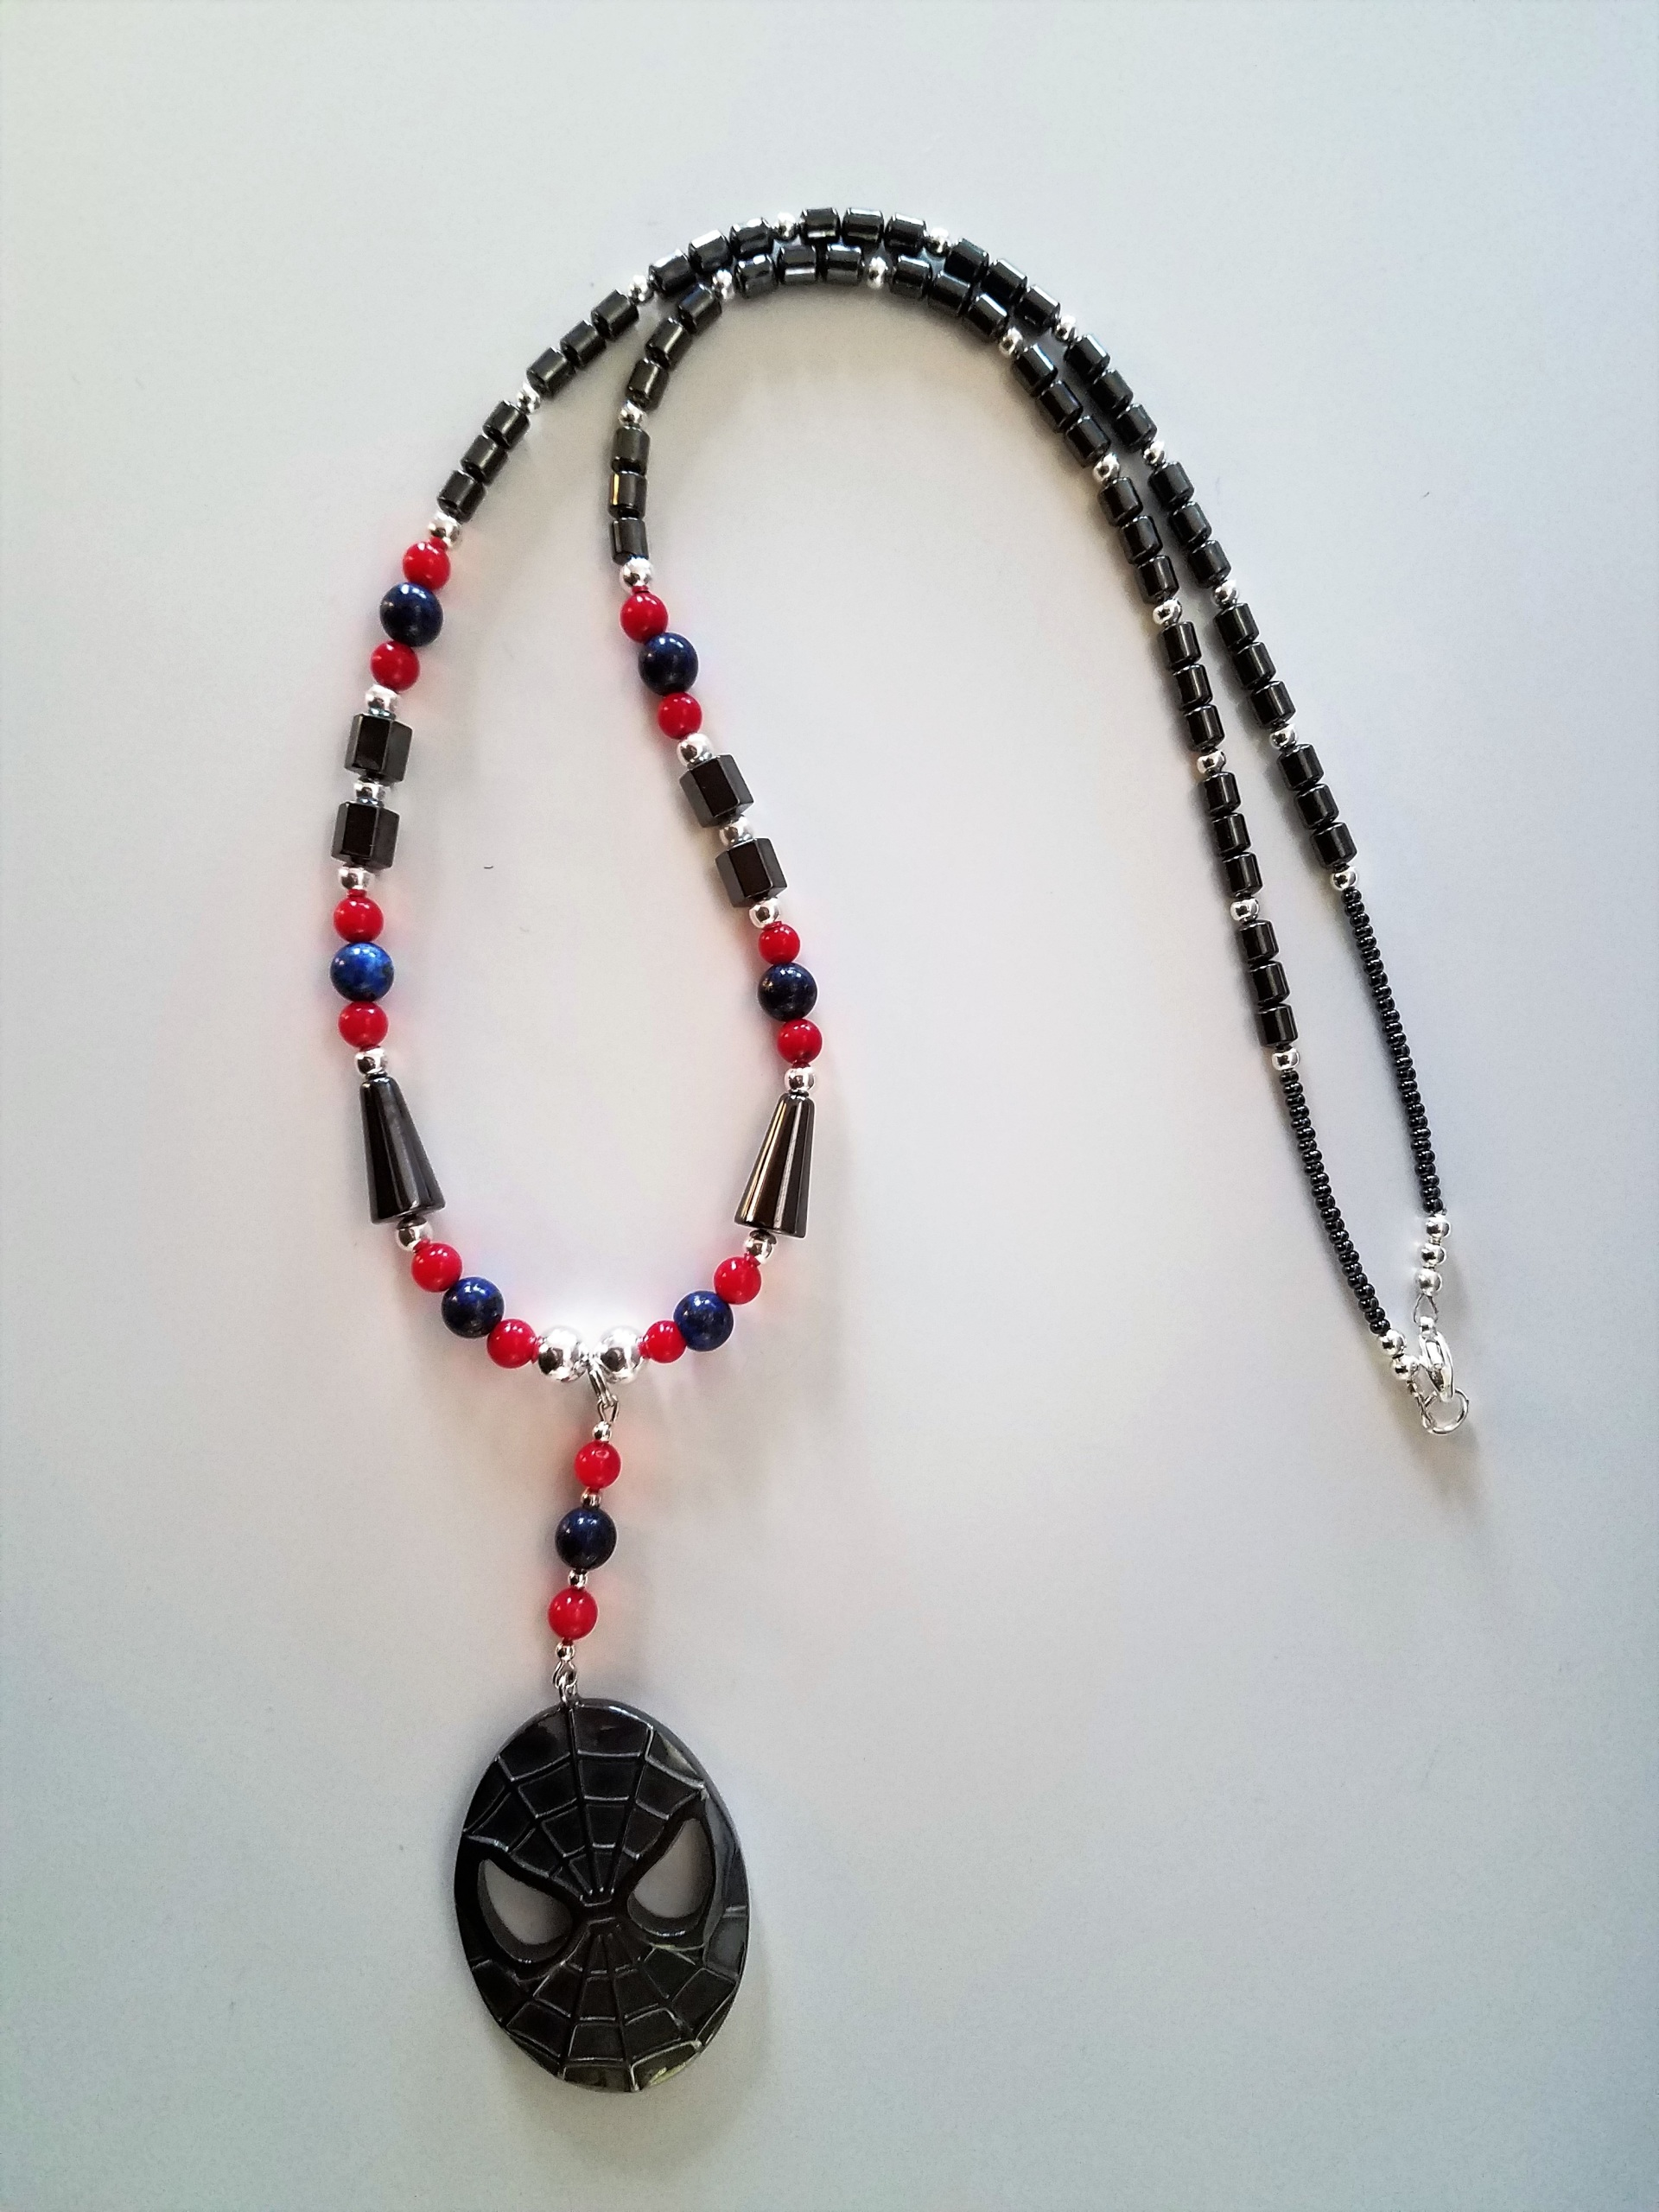 hematite is of much so amount jewellery pin heavy because fun jewelry rather the necklace this